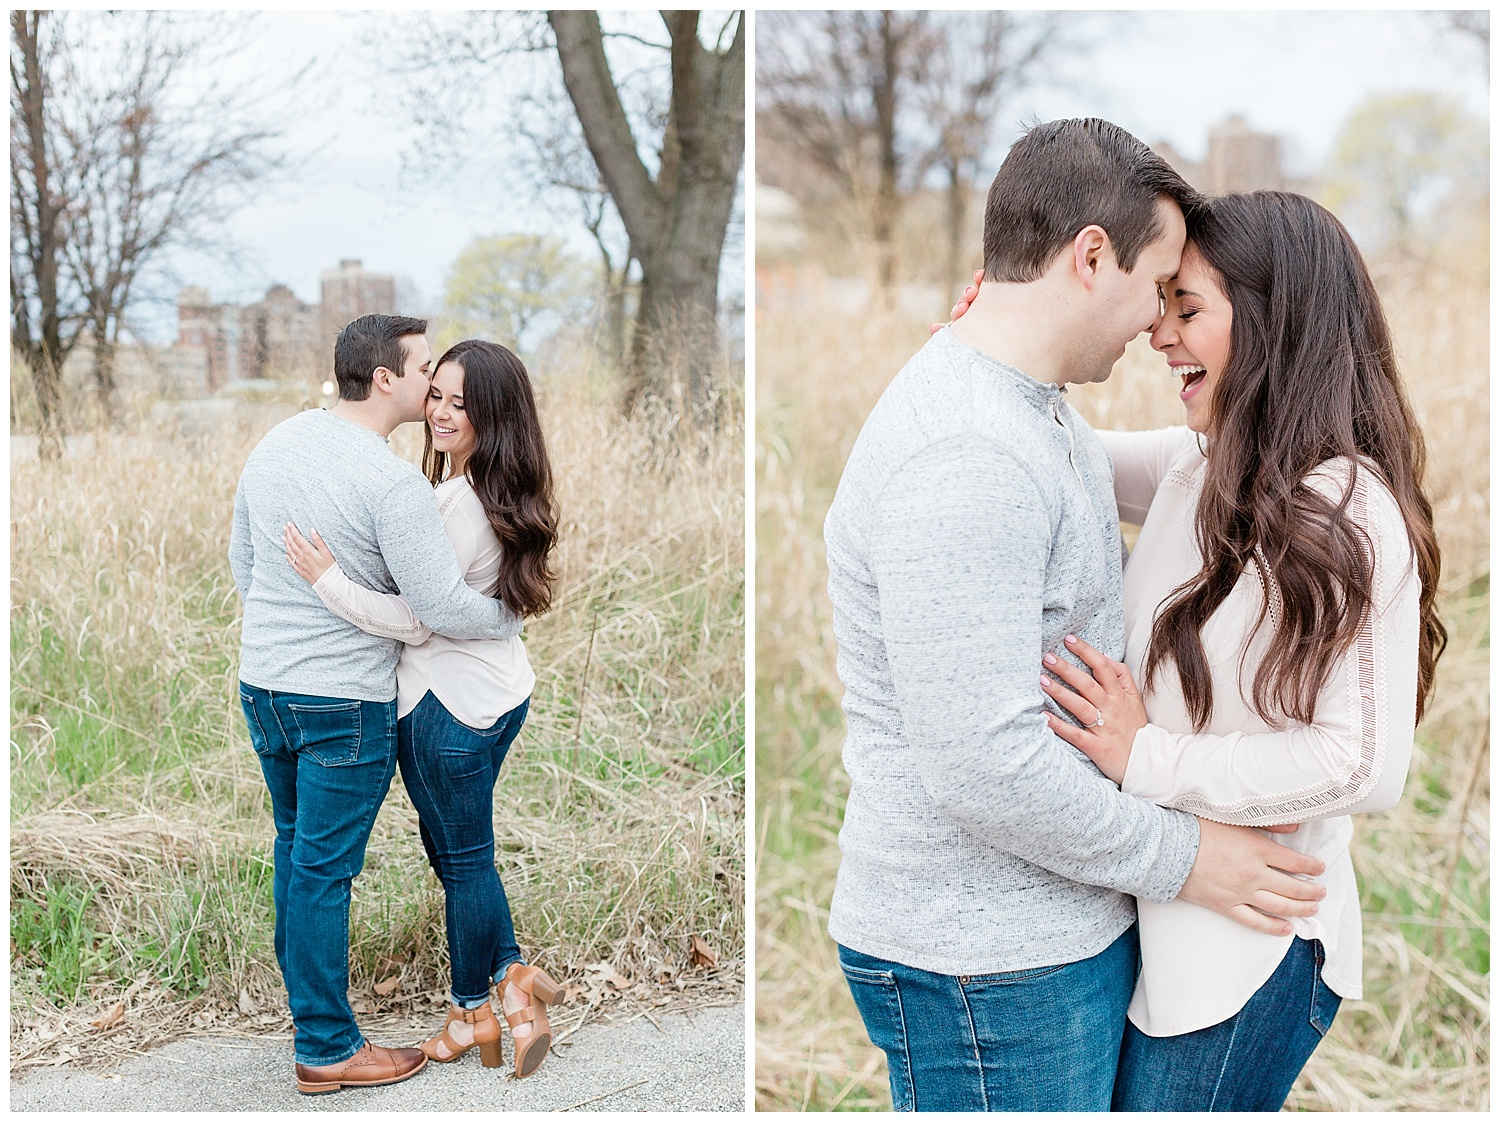 classic-downtown-chicago-engagement-session-kristen-cloyd-photography_0021.jpg